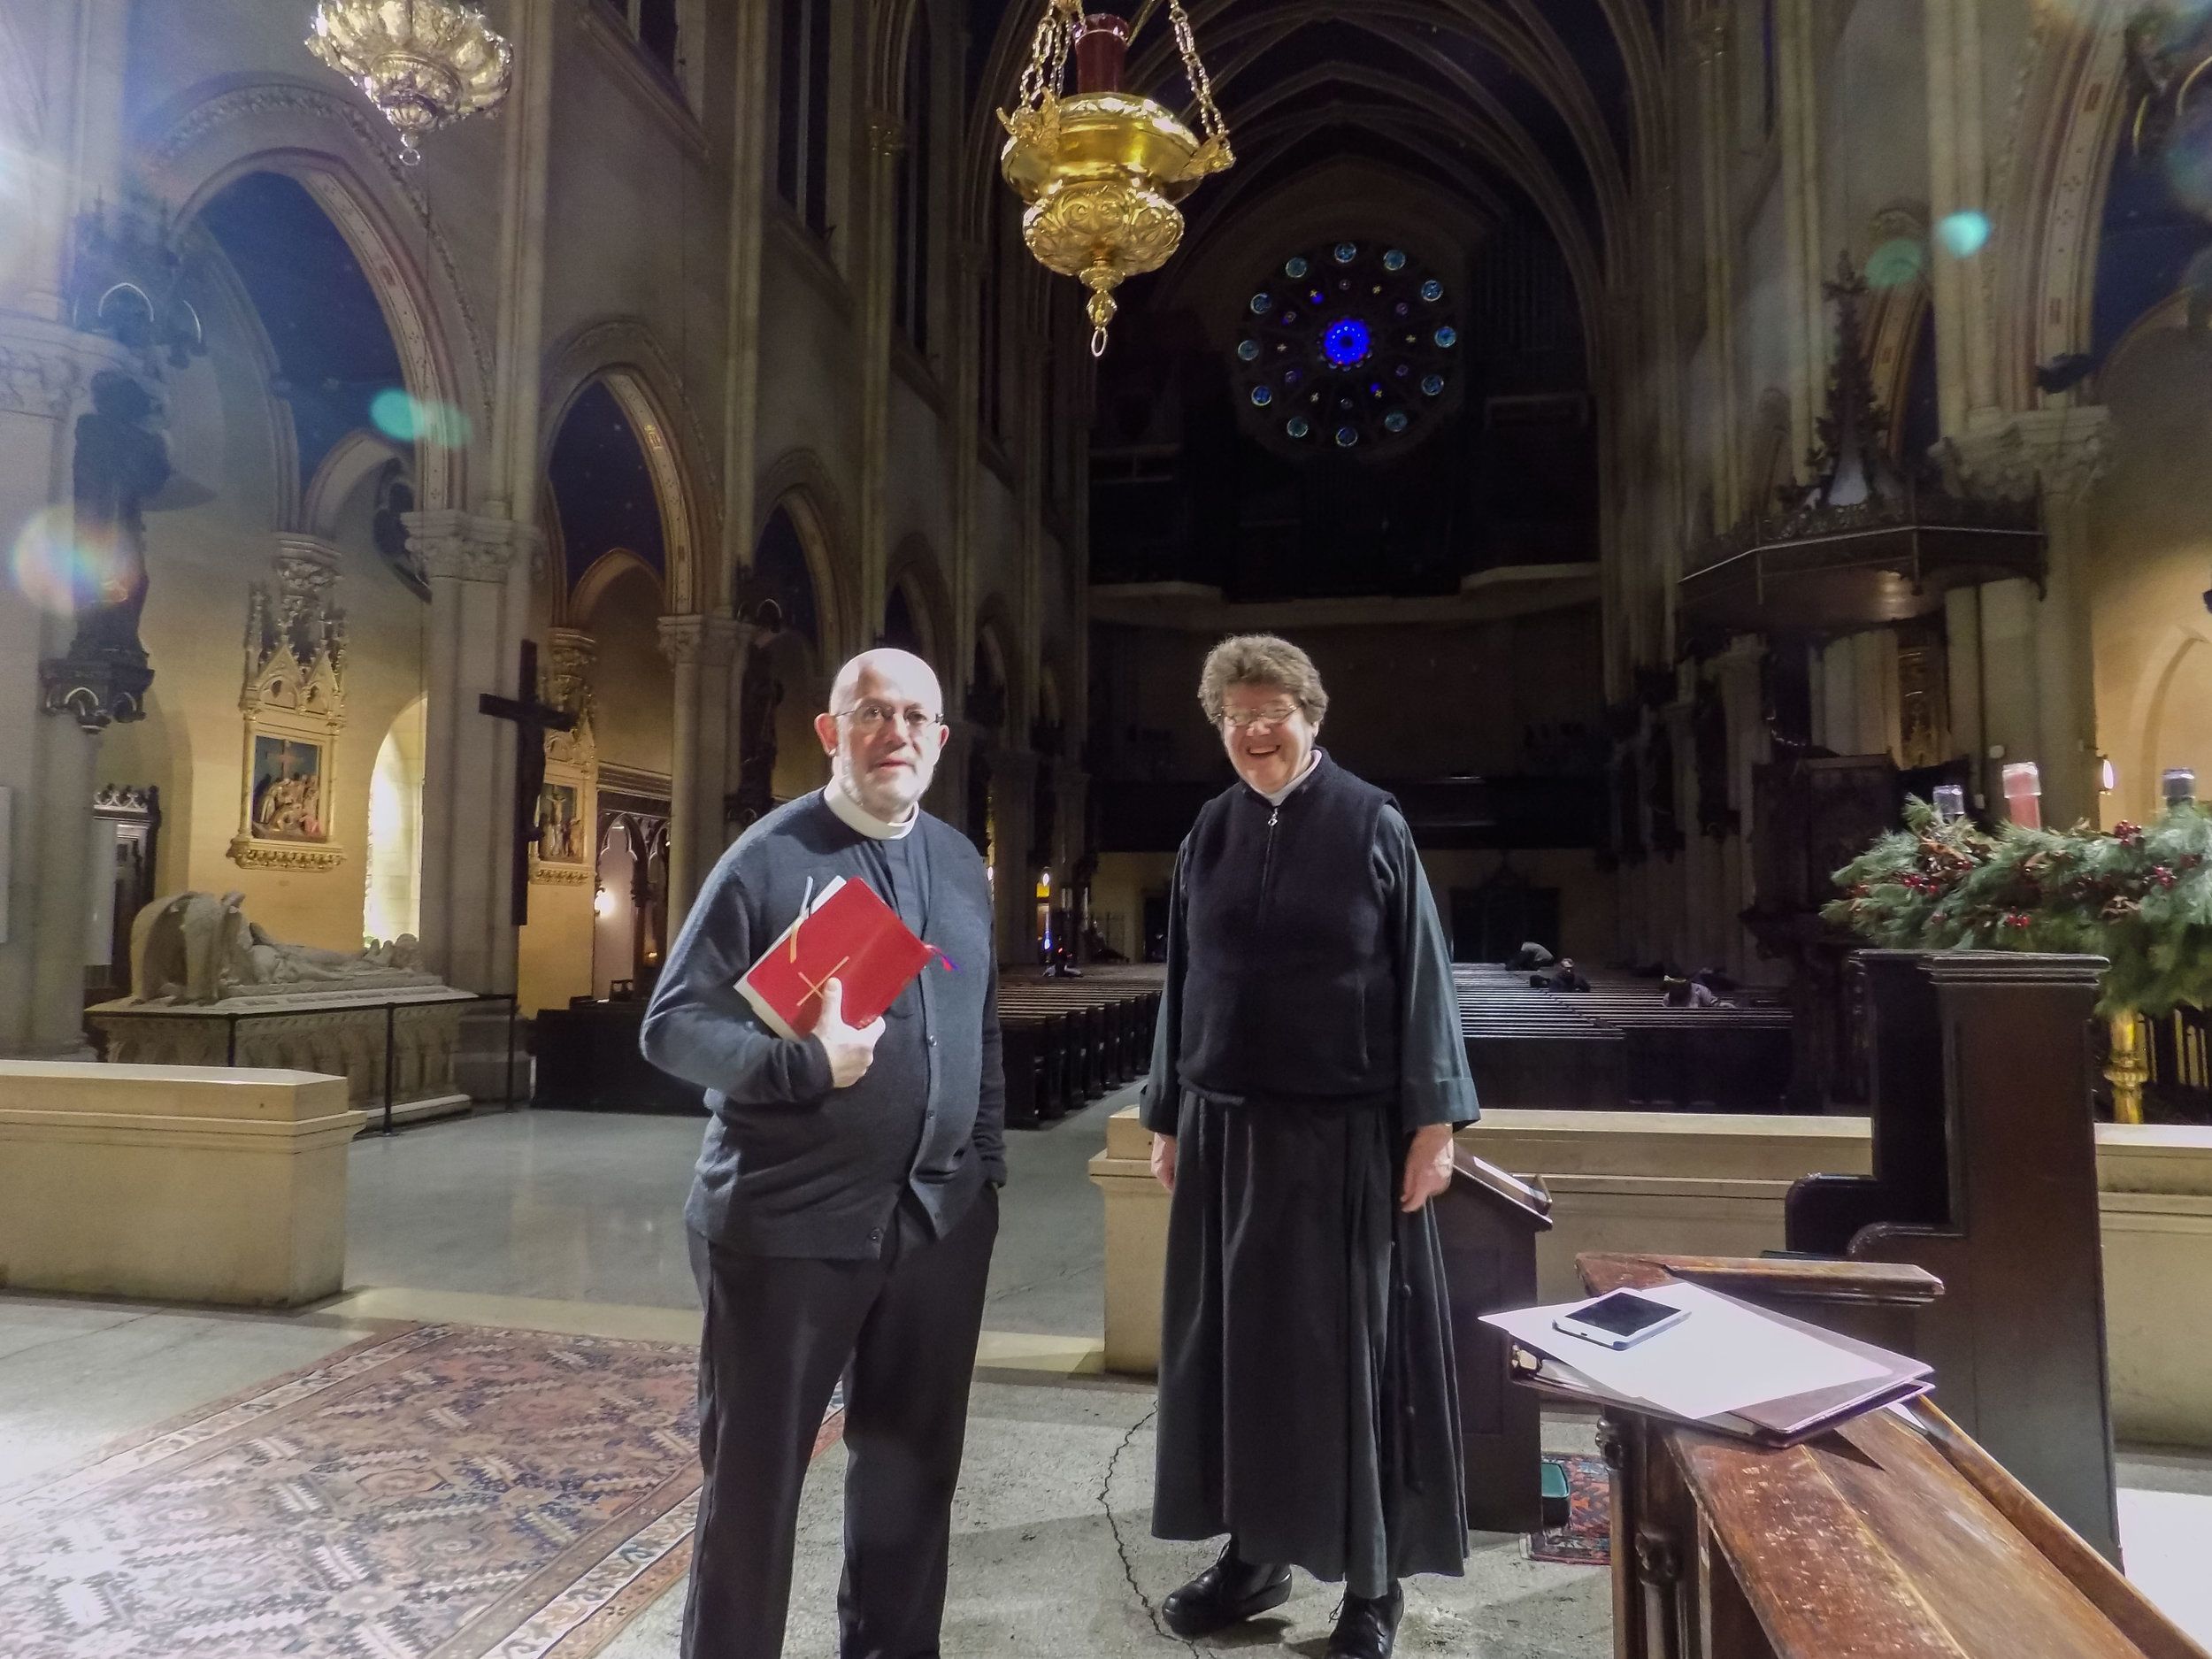 Father Smith and Sr. Eleanor Francis, C.S.J.B. after Morning Prayer on Monday, December 12, 2016. Sister serves as the superior of the Community of St. John Baptist, the community of our resident sisters.